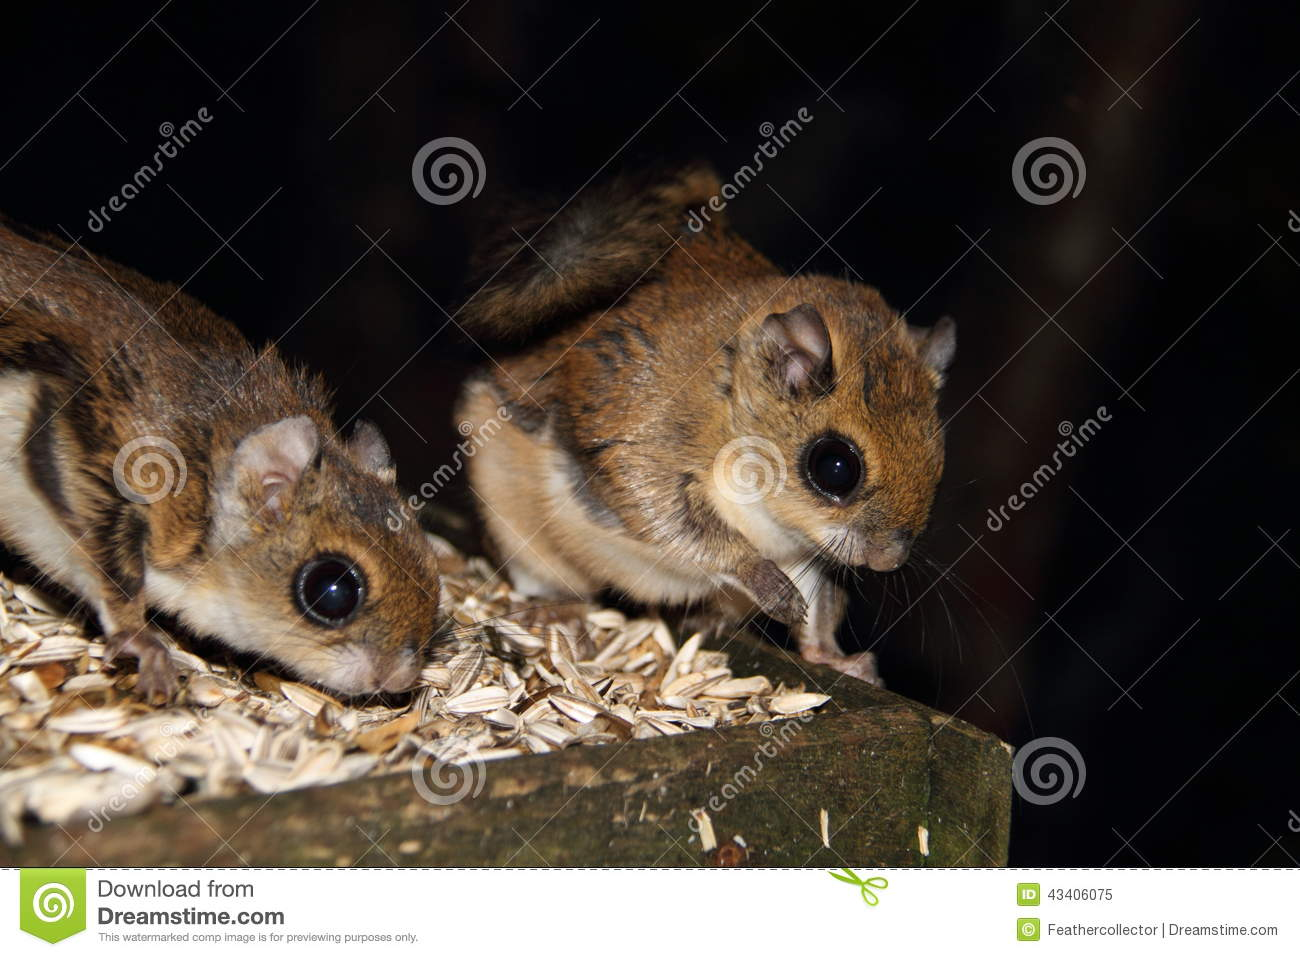 Japanese Dwarf Flying Squirrel clipart #13, Download drawings